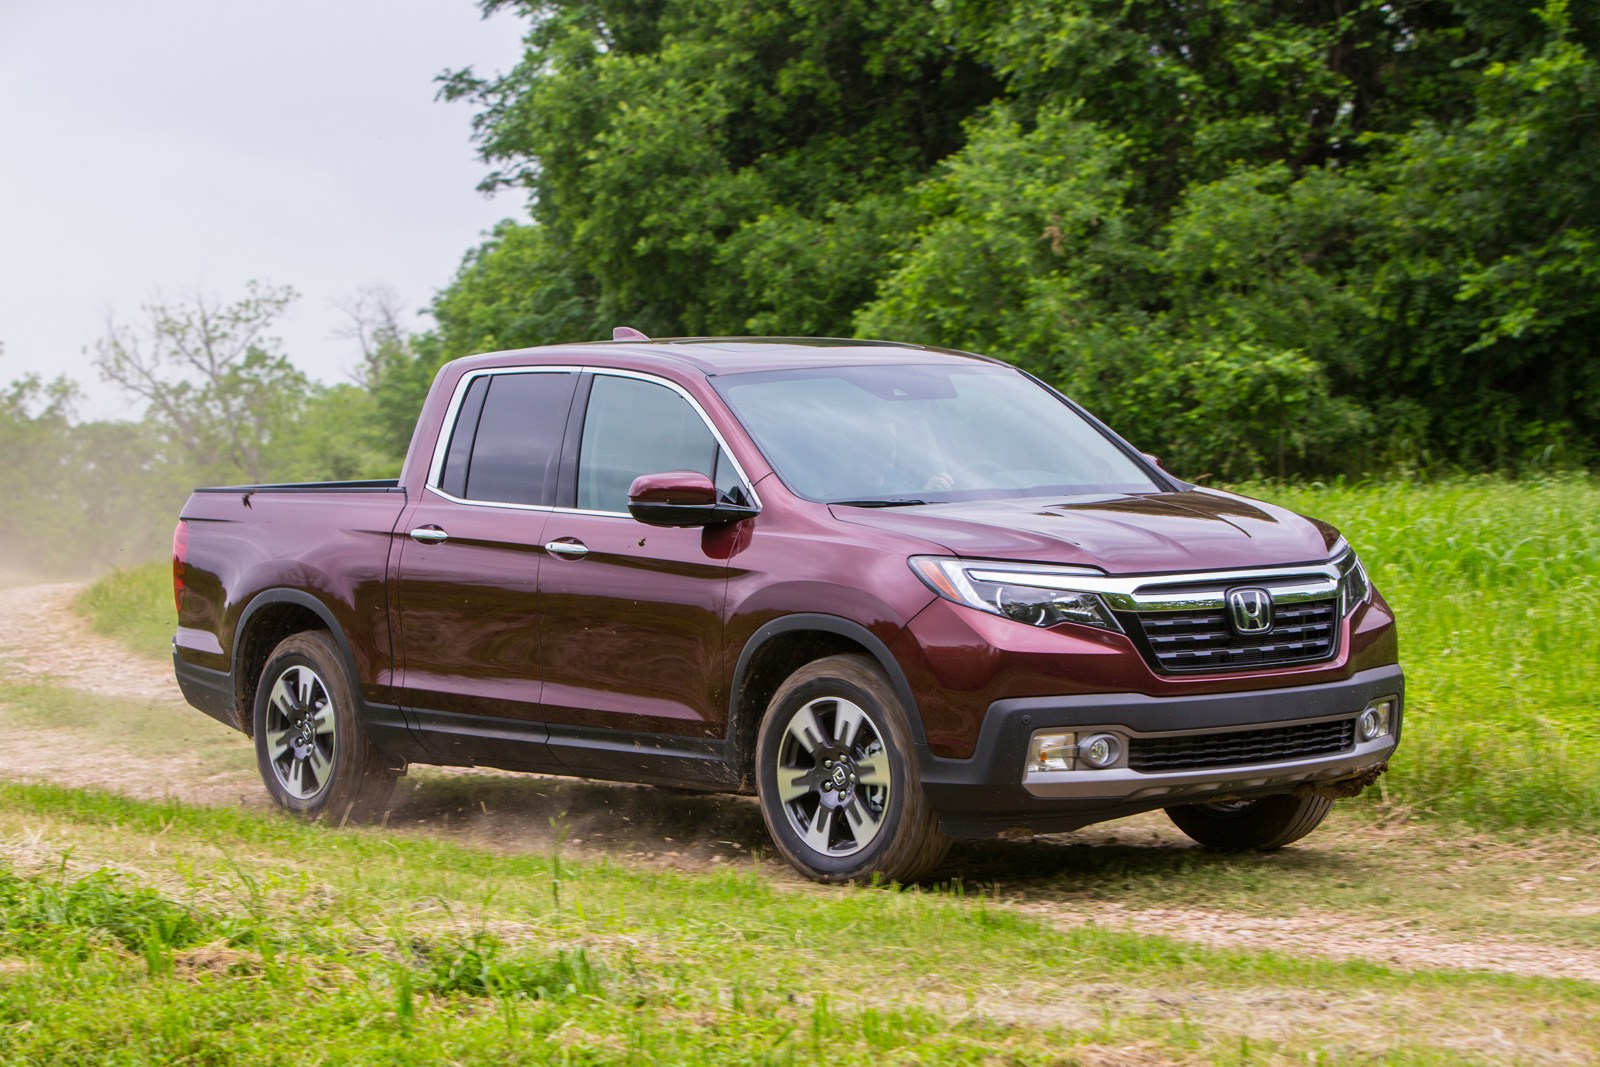 The Most American Made Car From Honda Is Ridgeline Pickup Truck Built In Lincoln Alabama Was Not On List Last Year